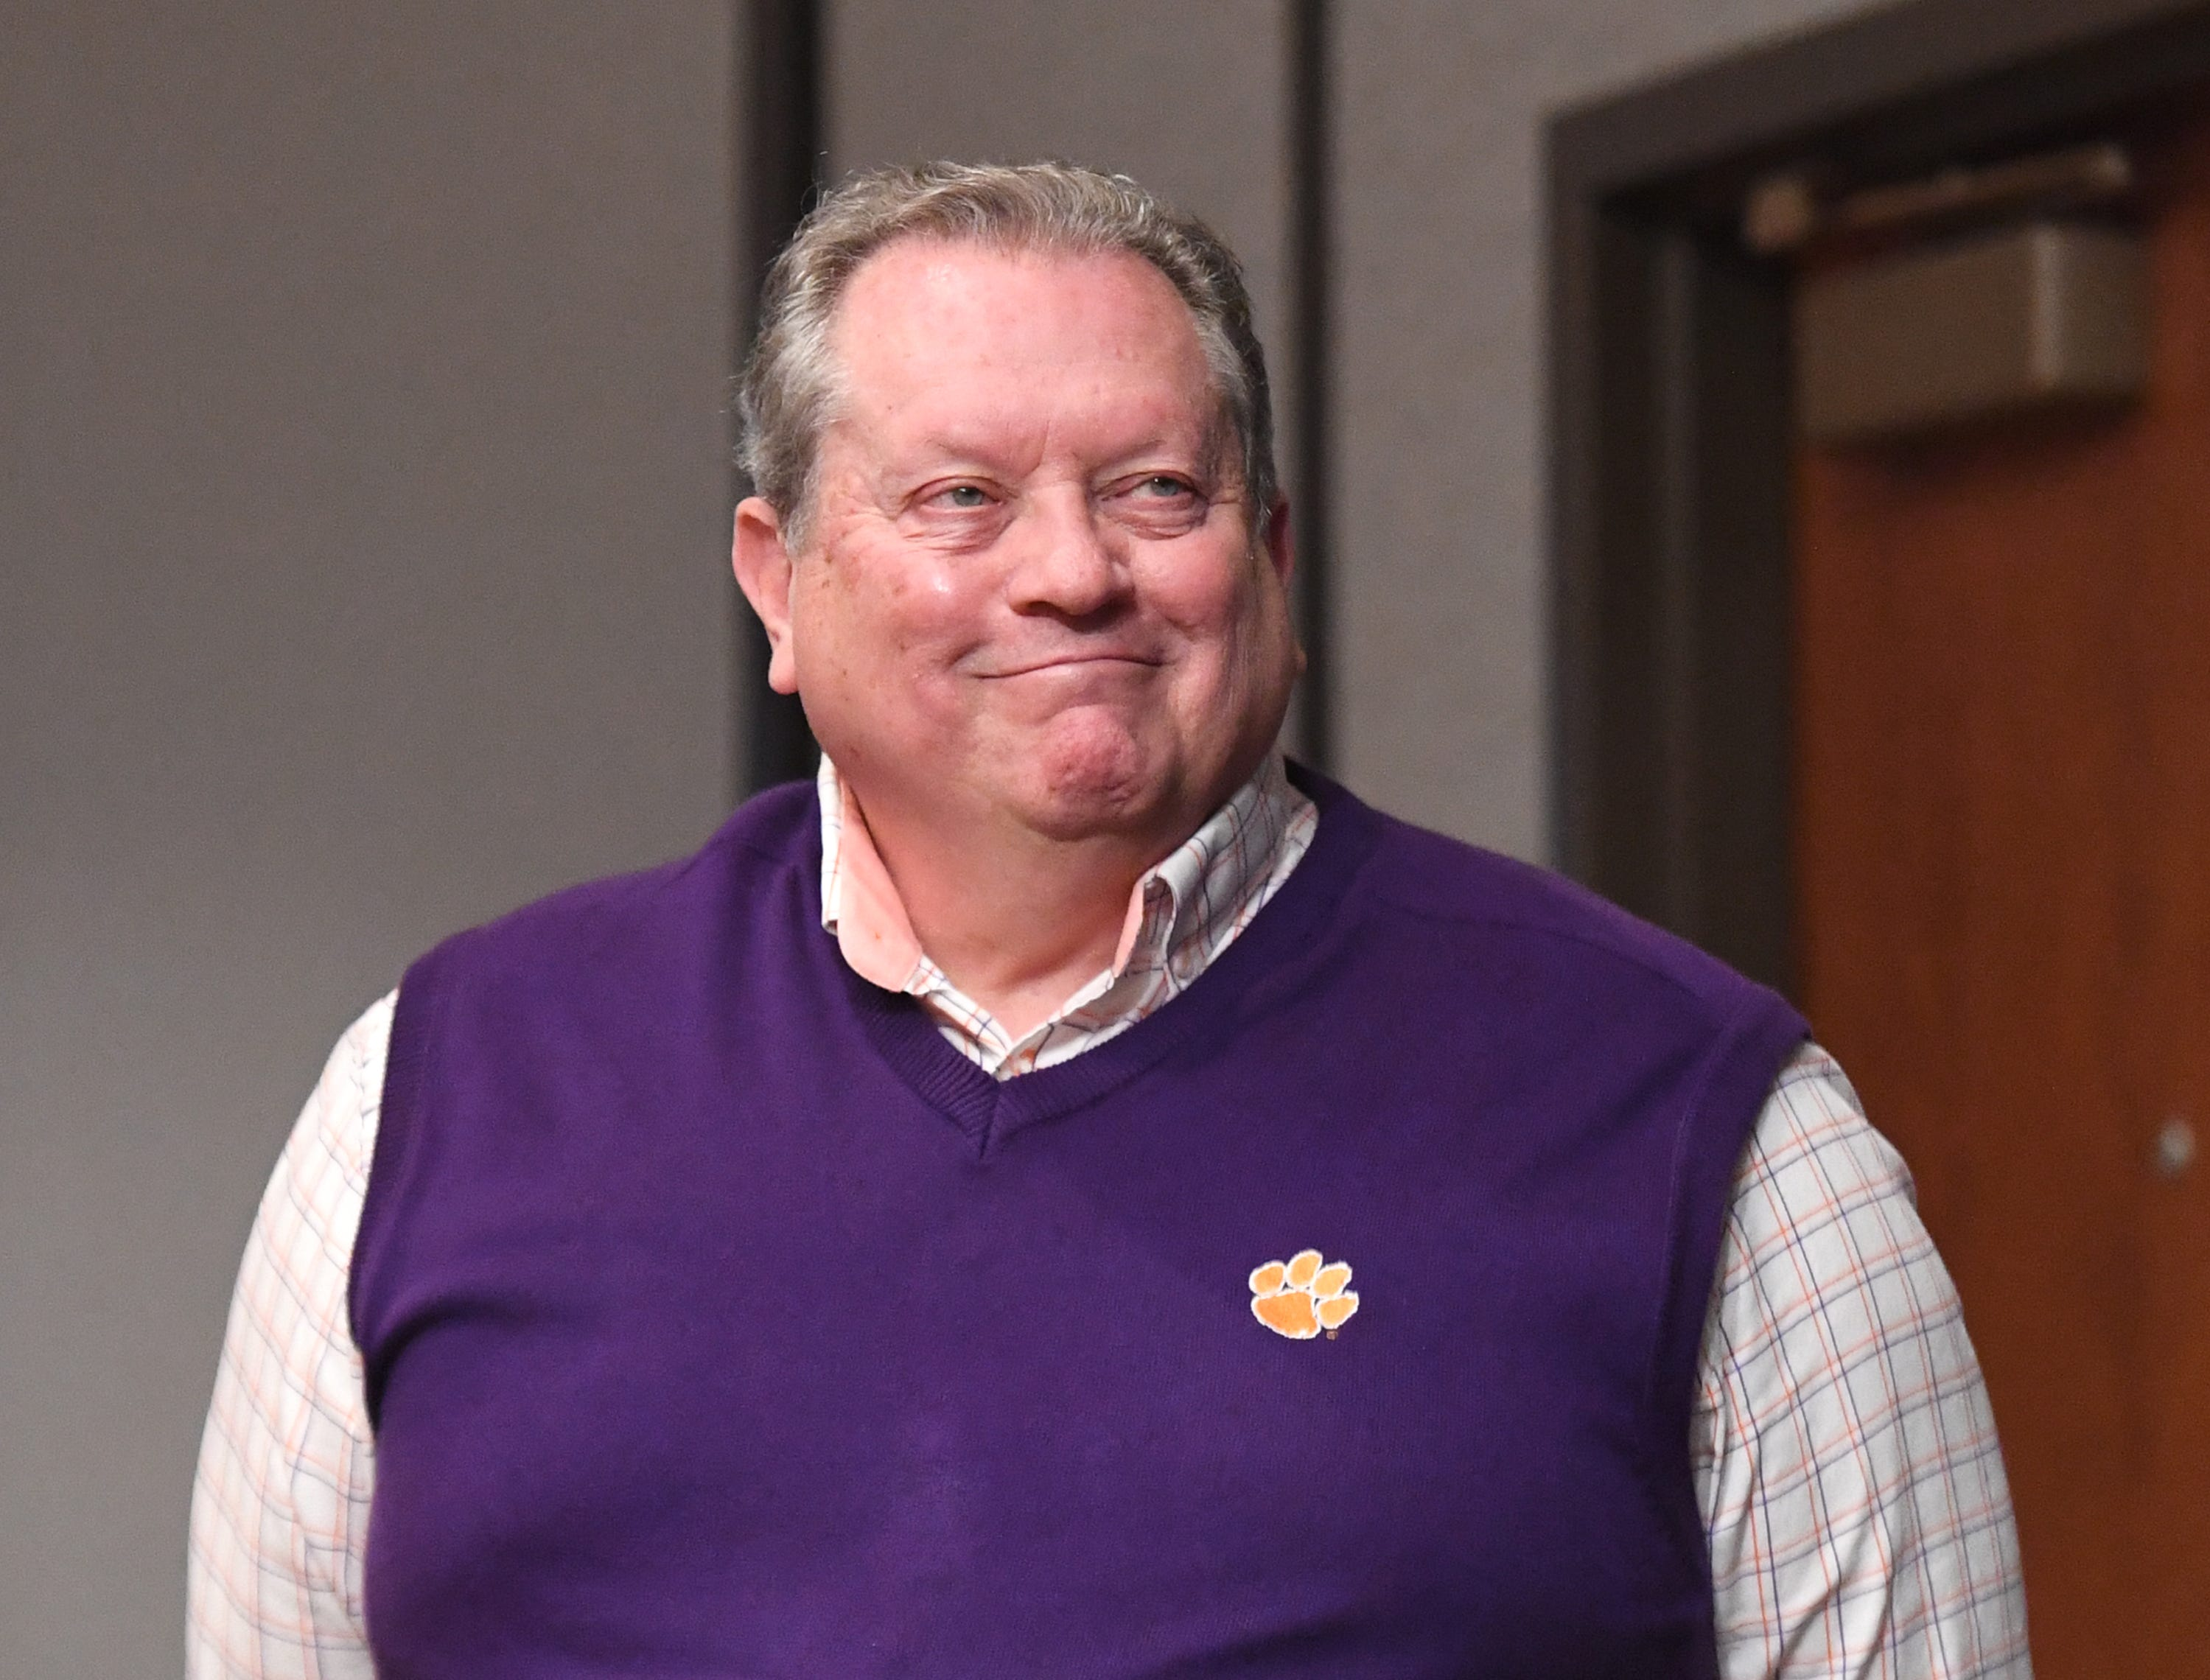 Jerry Chapman, a former city council member for the City of Clemson, was the recipient of the Abernathy/Cox One Award which was presented at the State of Clemson event held at the Madren Center Tuesday, Feb. 19, 2019.  The award is given to on individual and one organization.